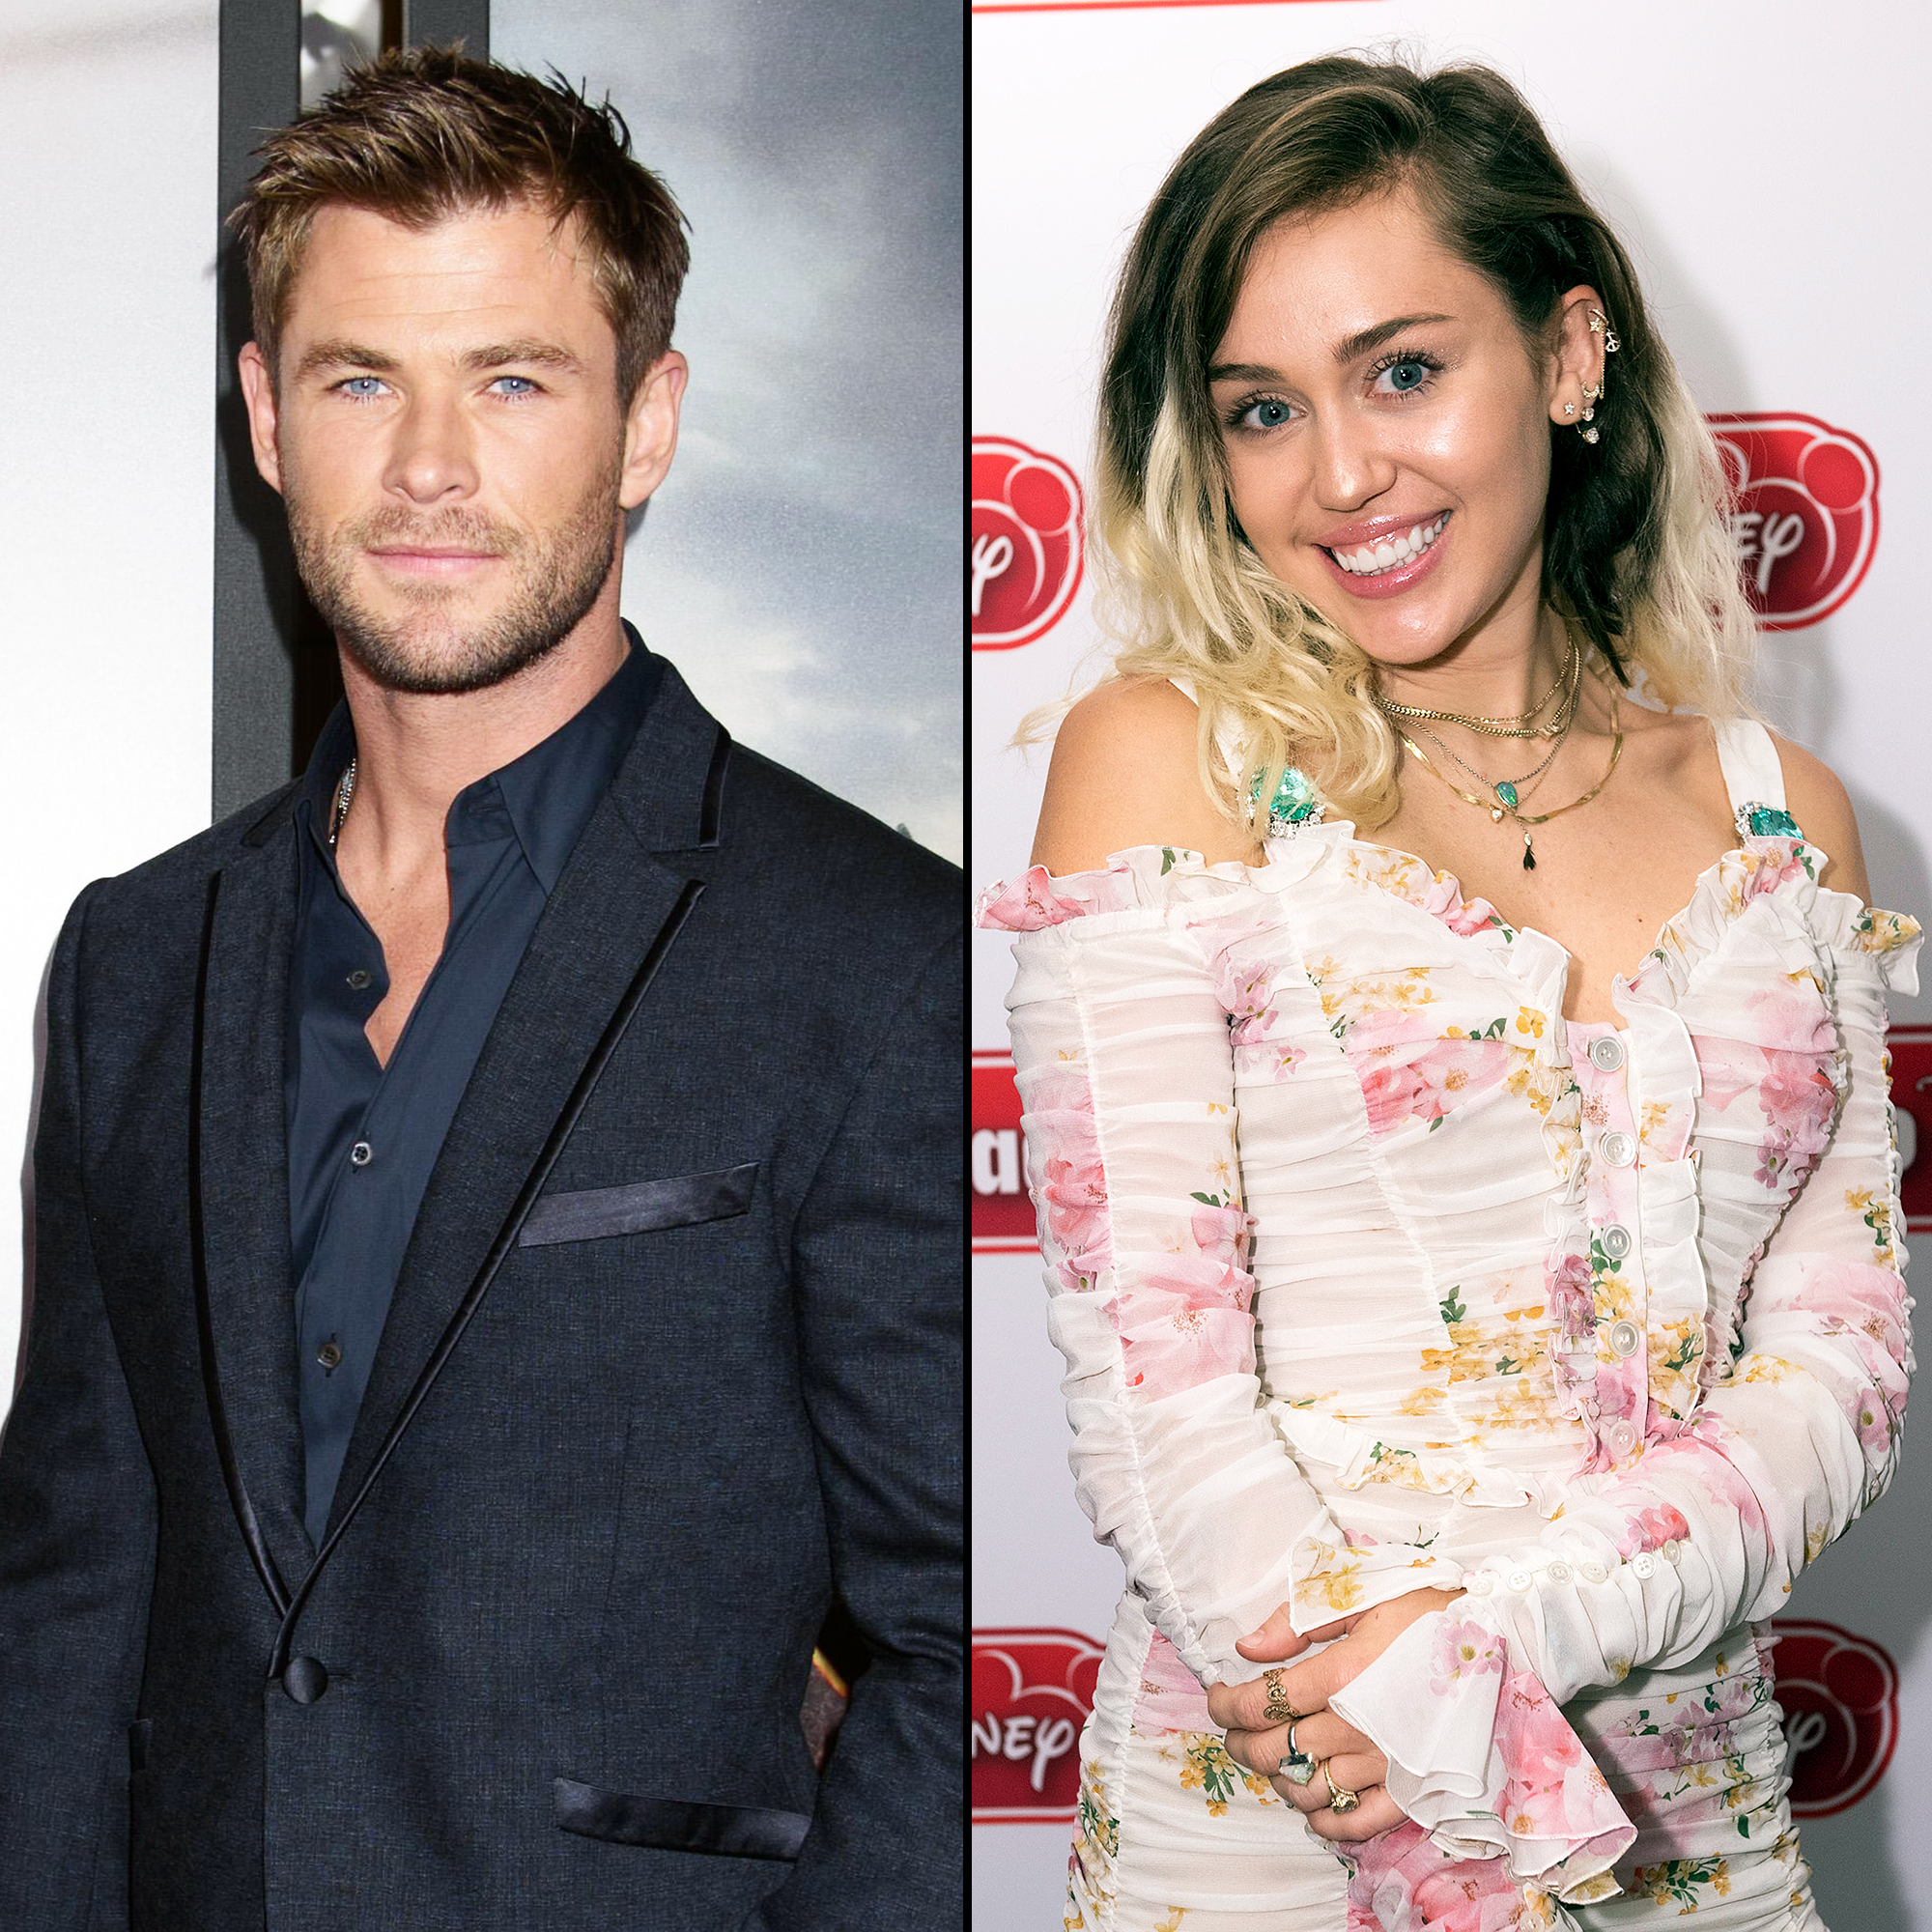 Chris Hemsworth Hilariously Lip Syncs to Miley Cyrus' 'Wrecking Ball'